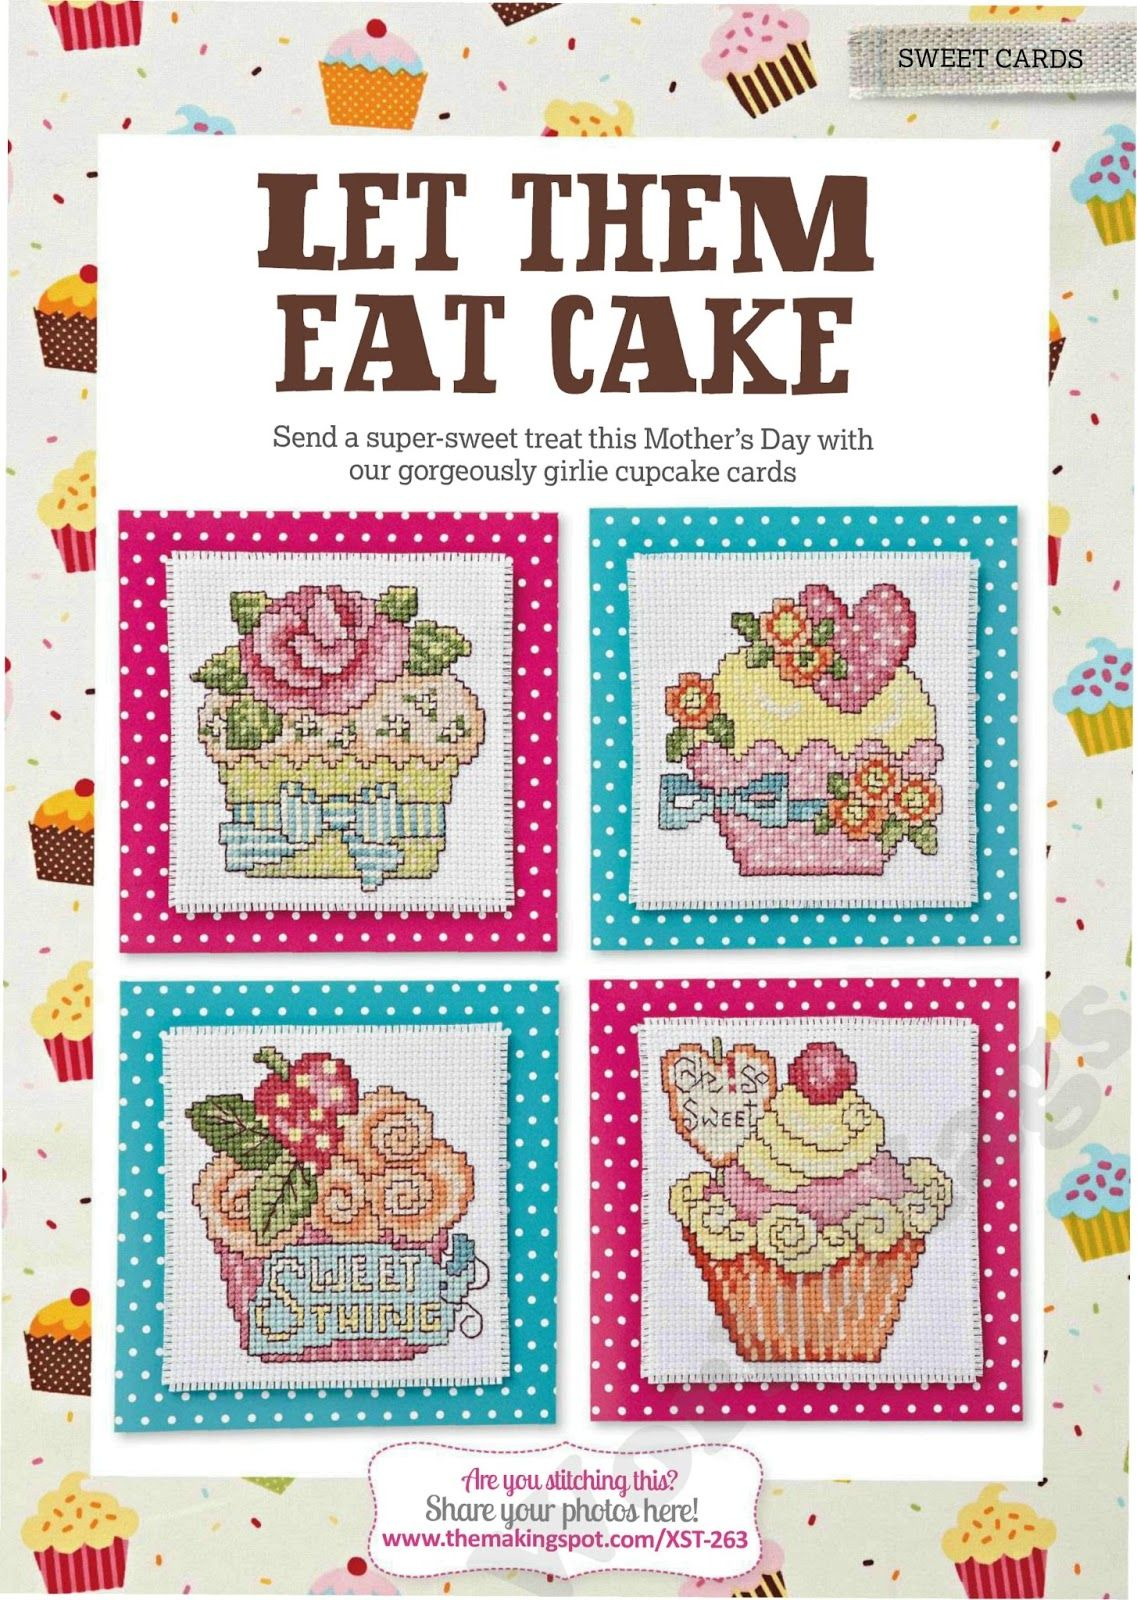 Vida em Ponto Cruz: Lindos cupcakes | Cross stitch patterns | Pinterest